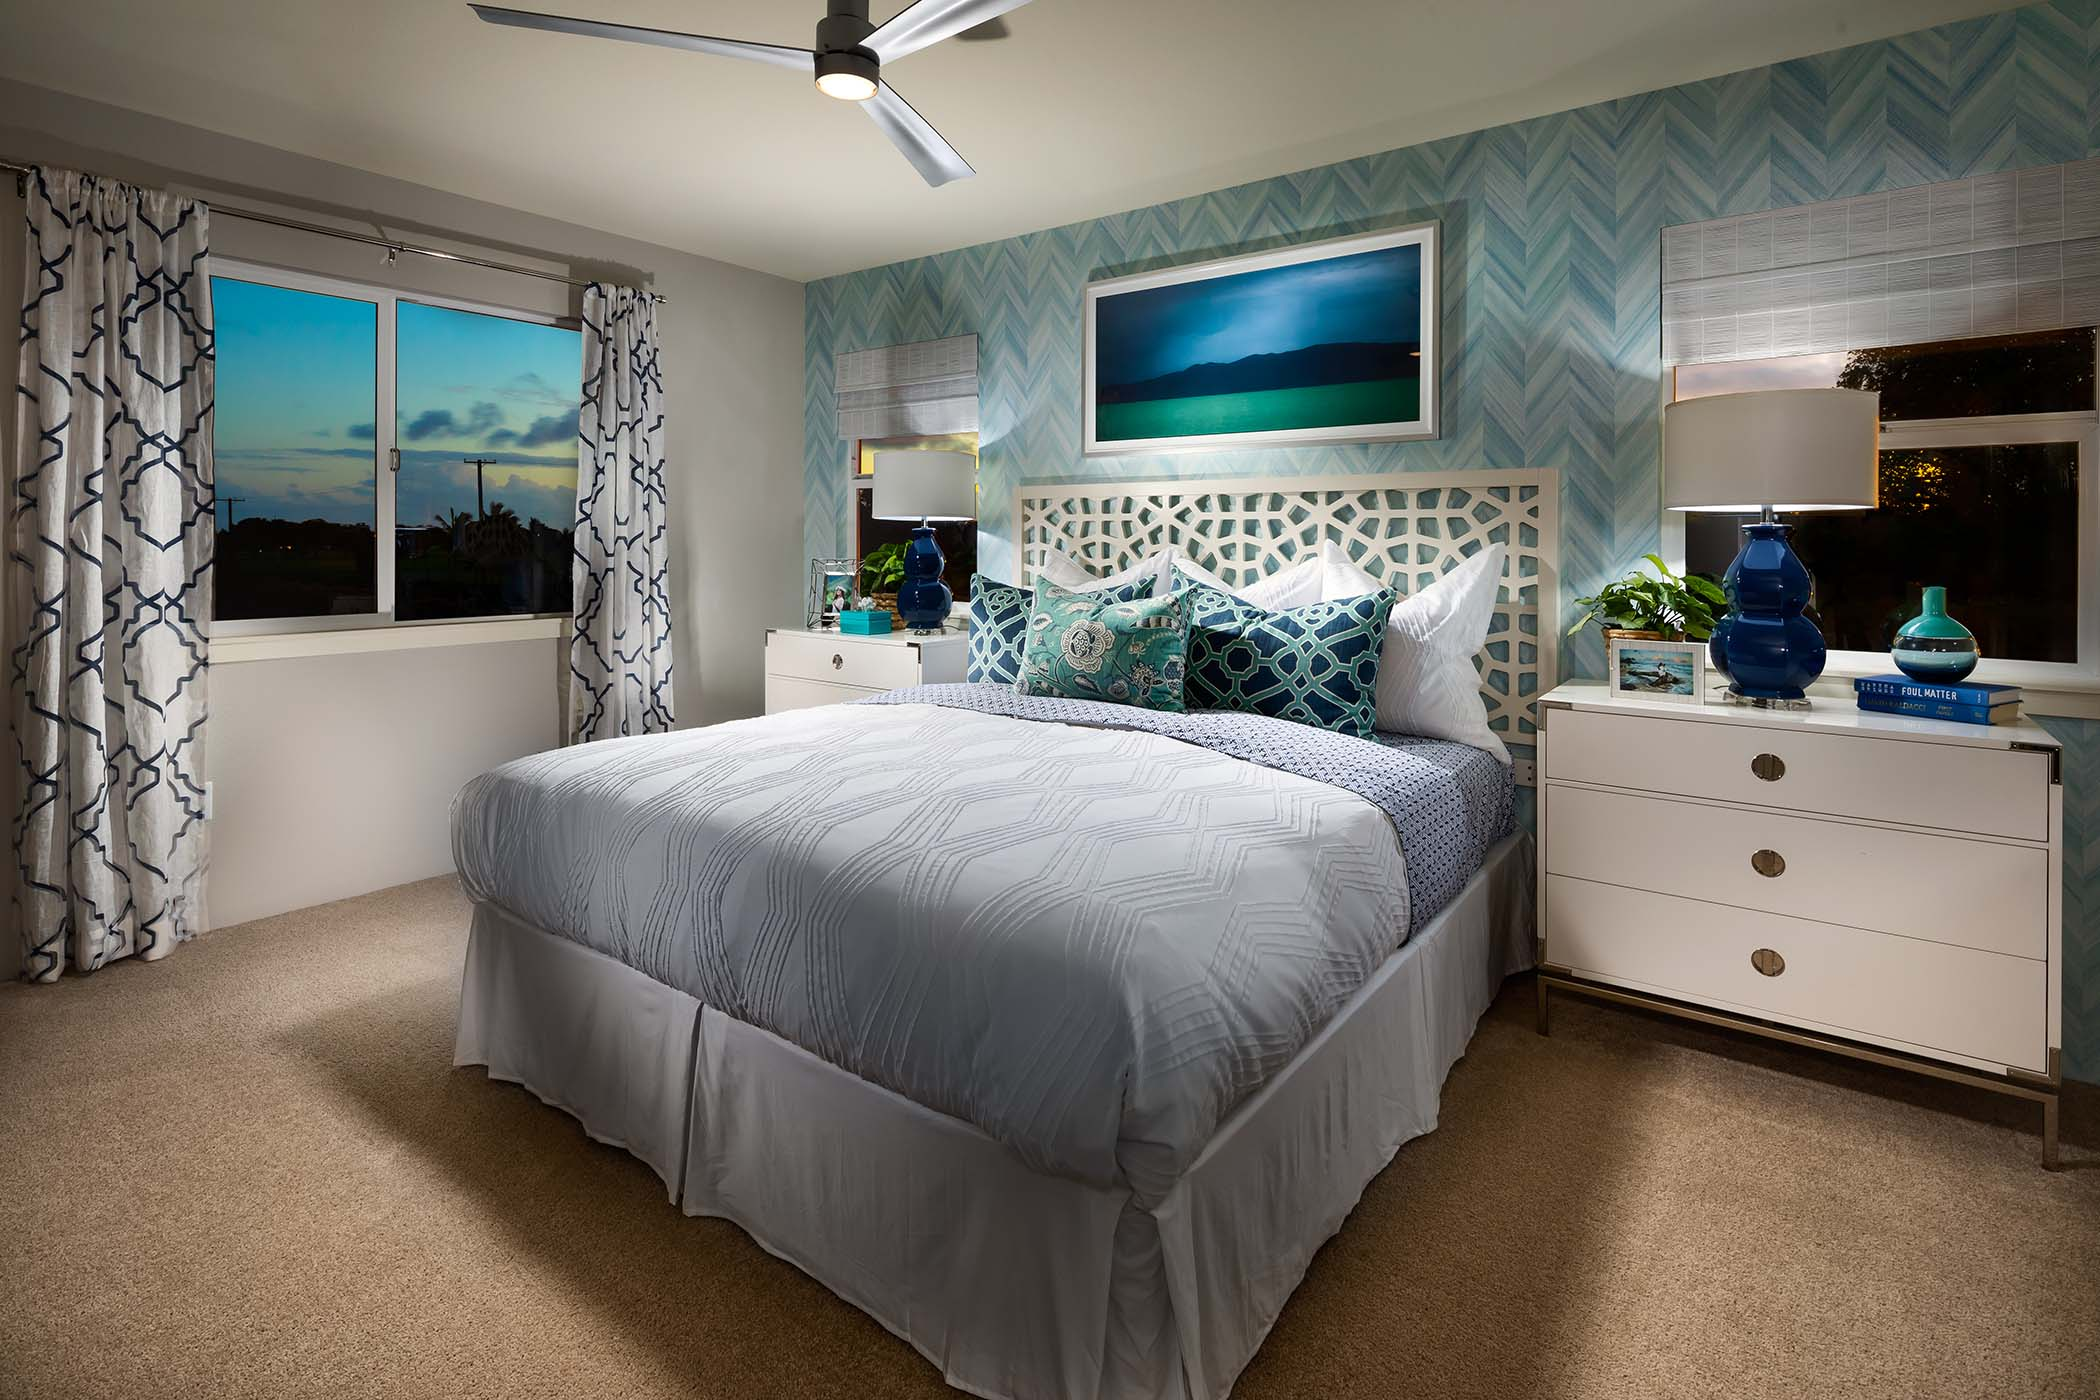 Seabridge Bedroom Rendering